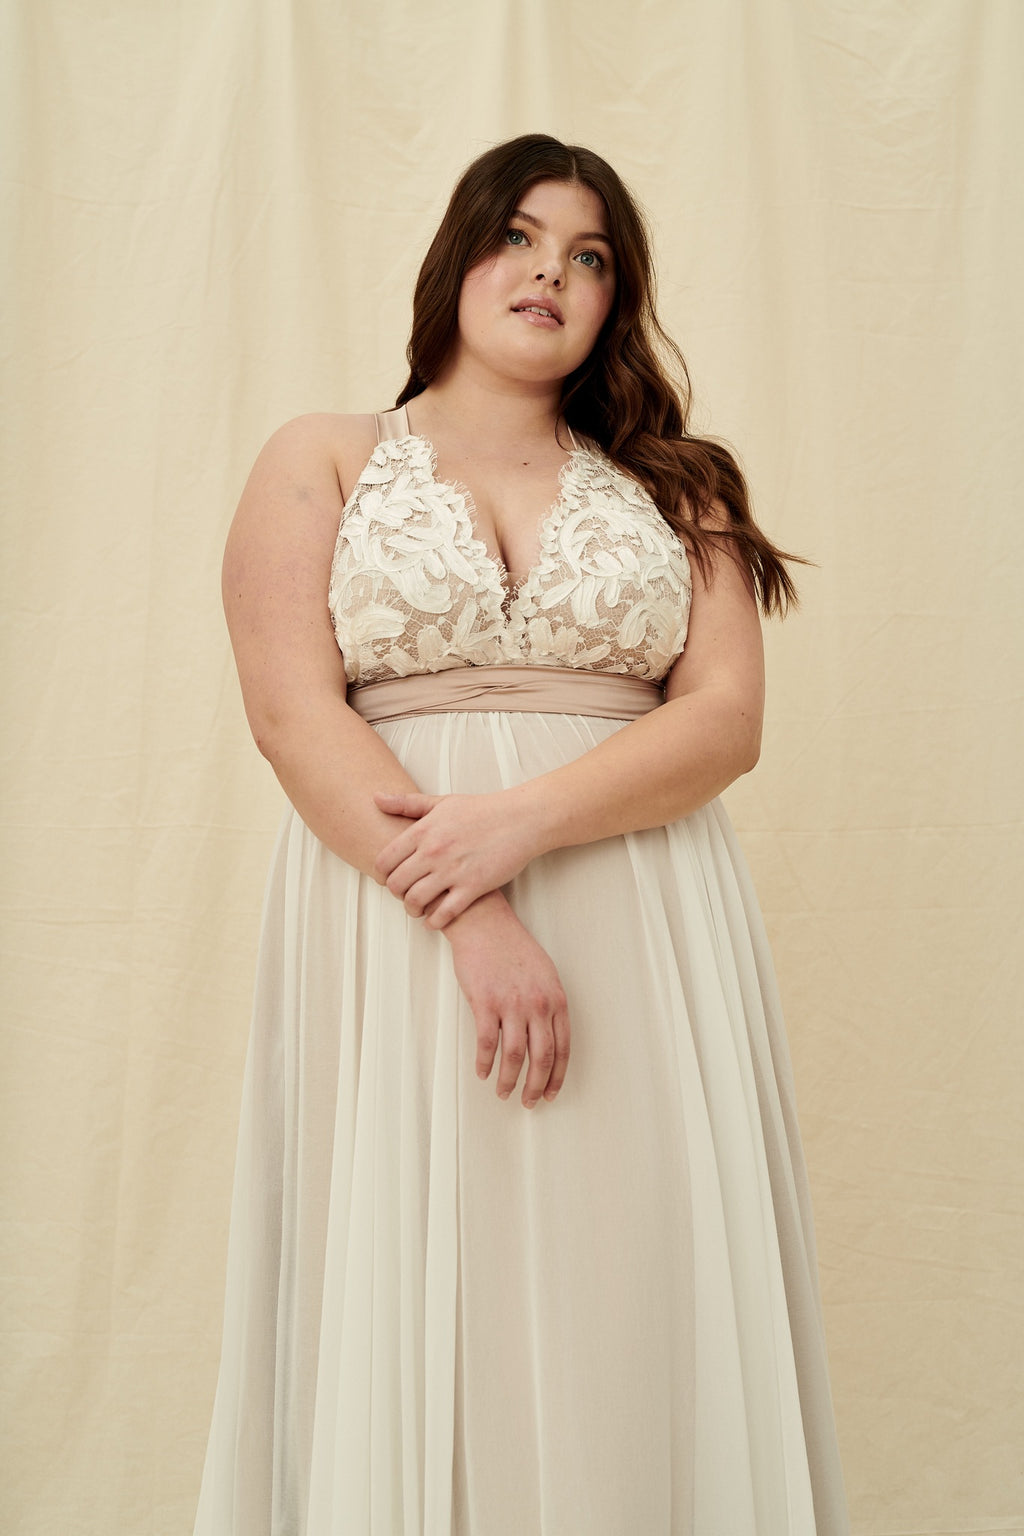 Where to find plus size wedding dress stores in Vancouver and Calgary